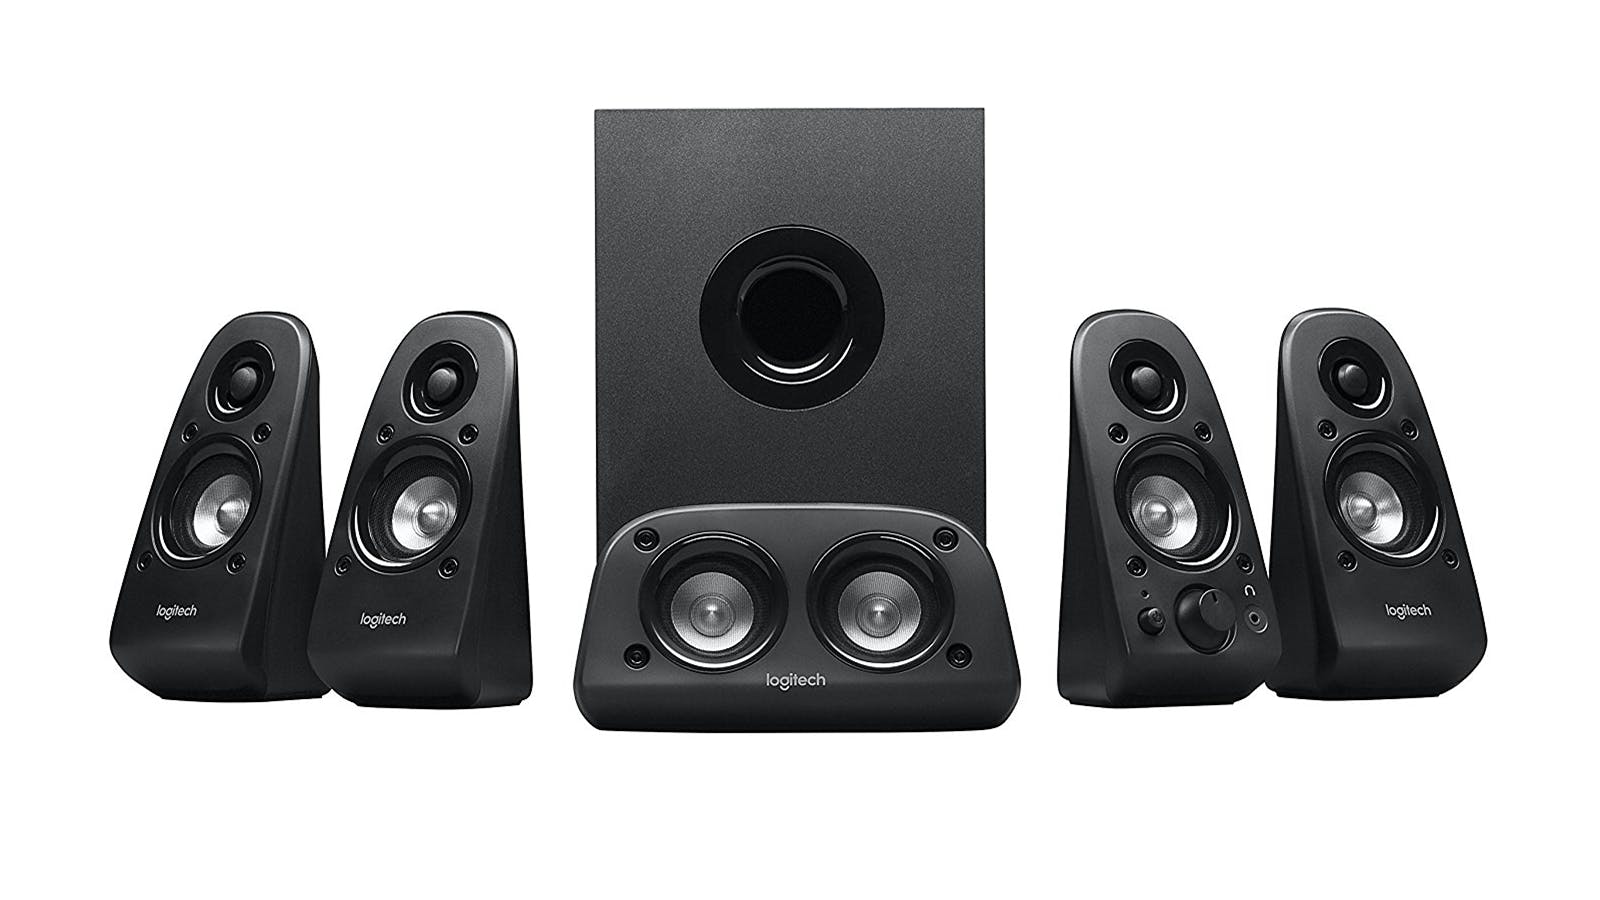 logitech z506 surround sound home theater speaker system. Black Bedroom Furniture Sets. Home Design Ideas